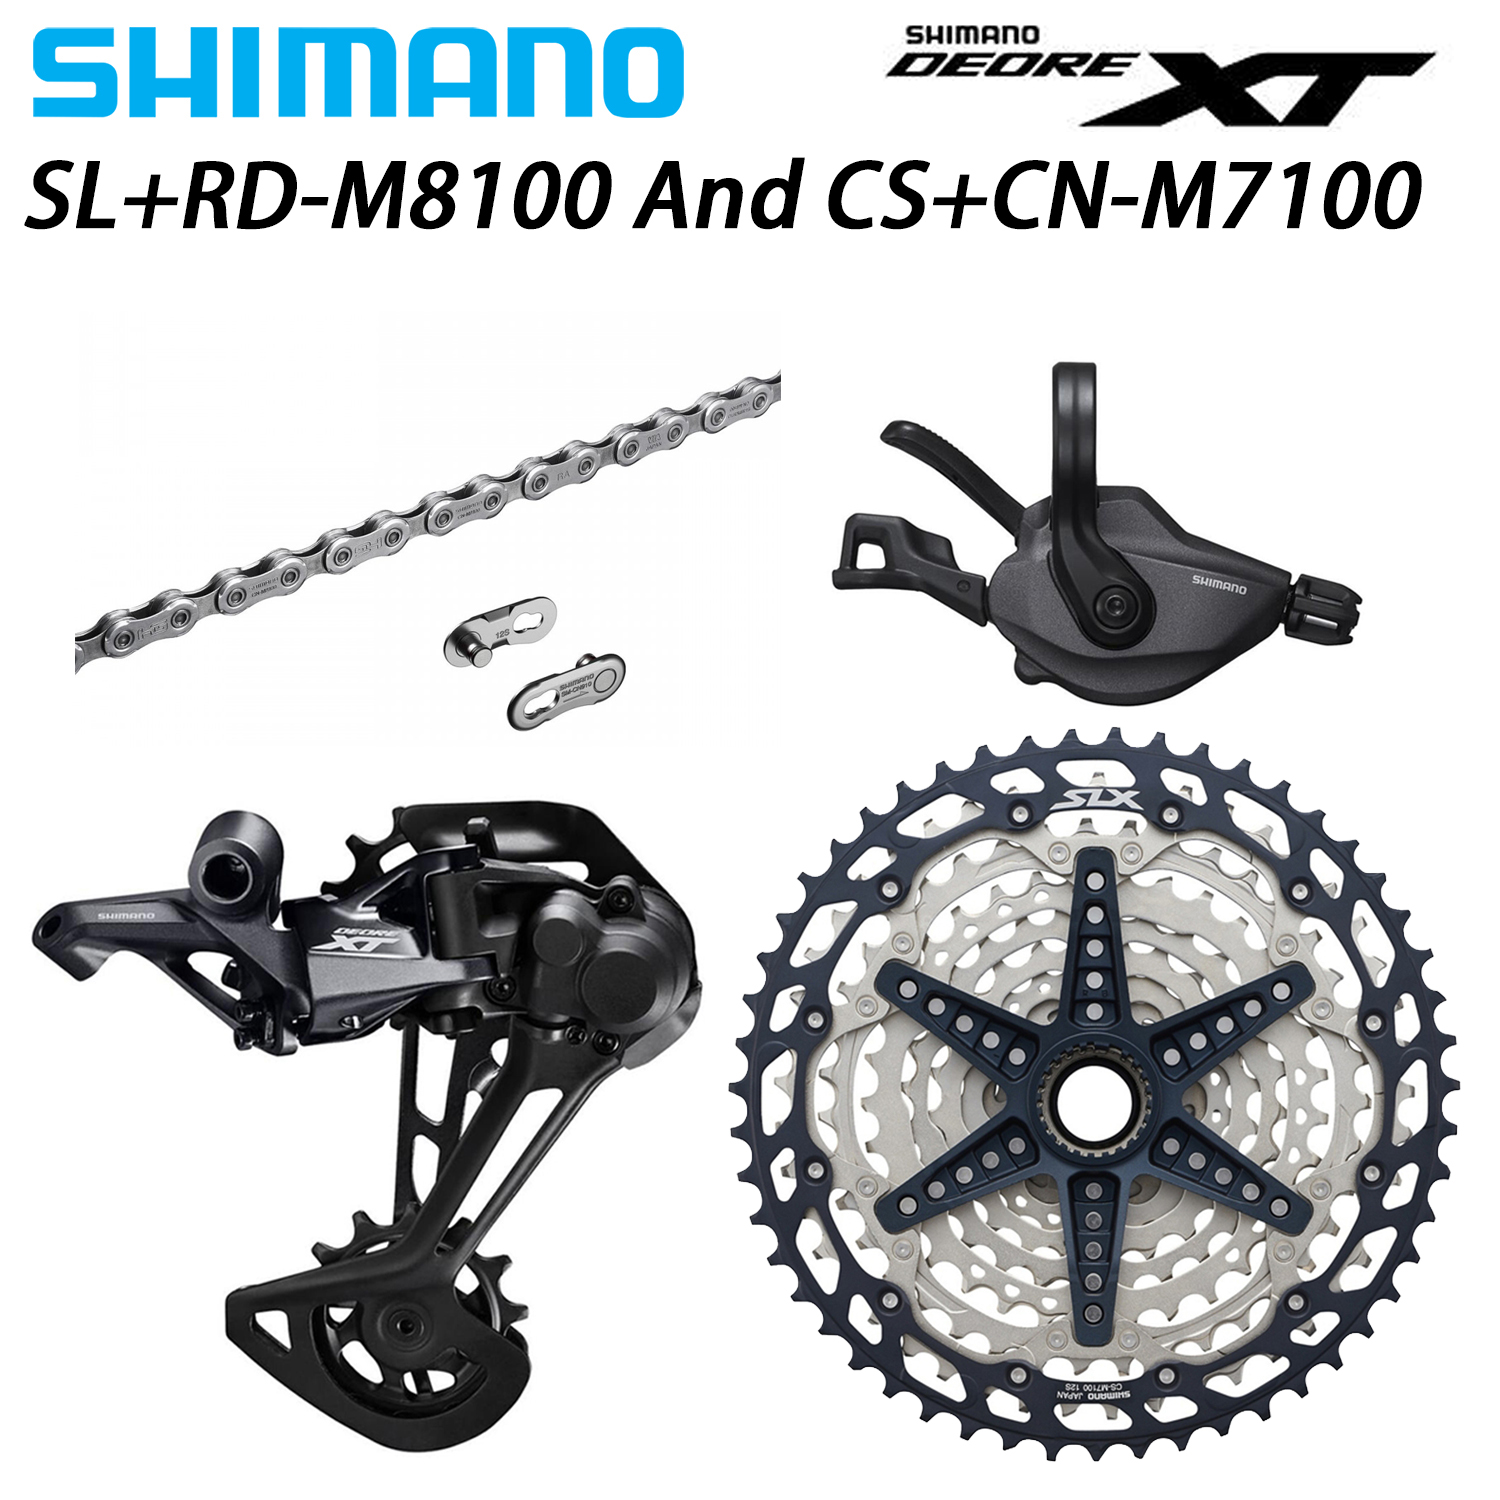 SHIMANO DEORE XT M8100 12 Speed Groupset MTB Bike 1x12-Speed 51T CS+CN M7100 + SL+RD M8100 shifter Rear Derailleur image